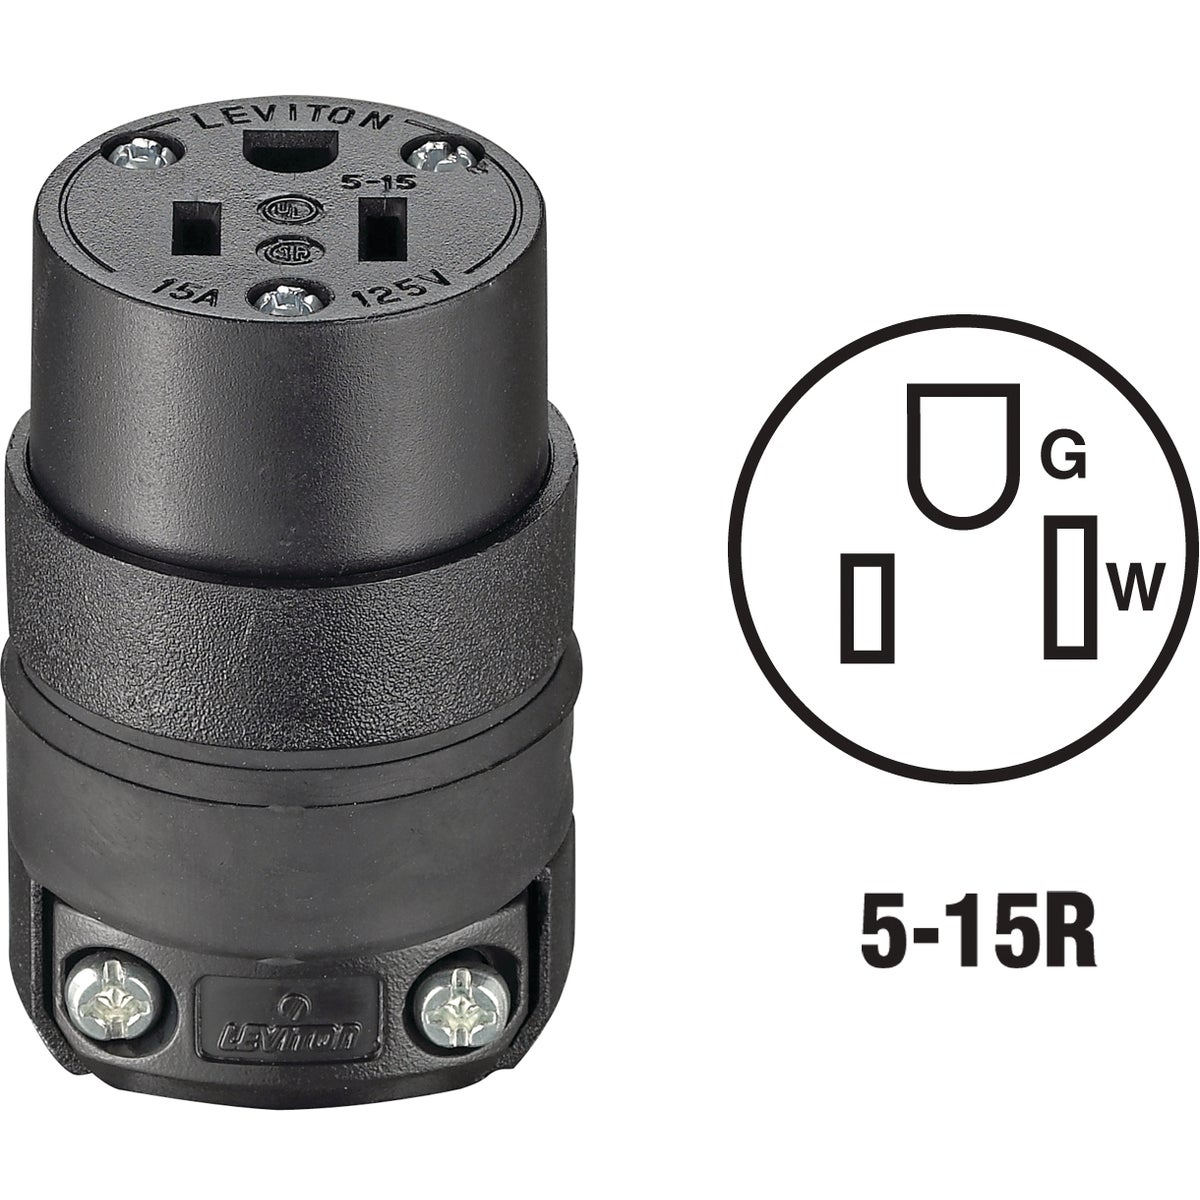 BLK CORD CONNECTOR - 870515CR by Leviton Mfg Co